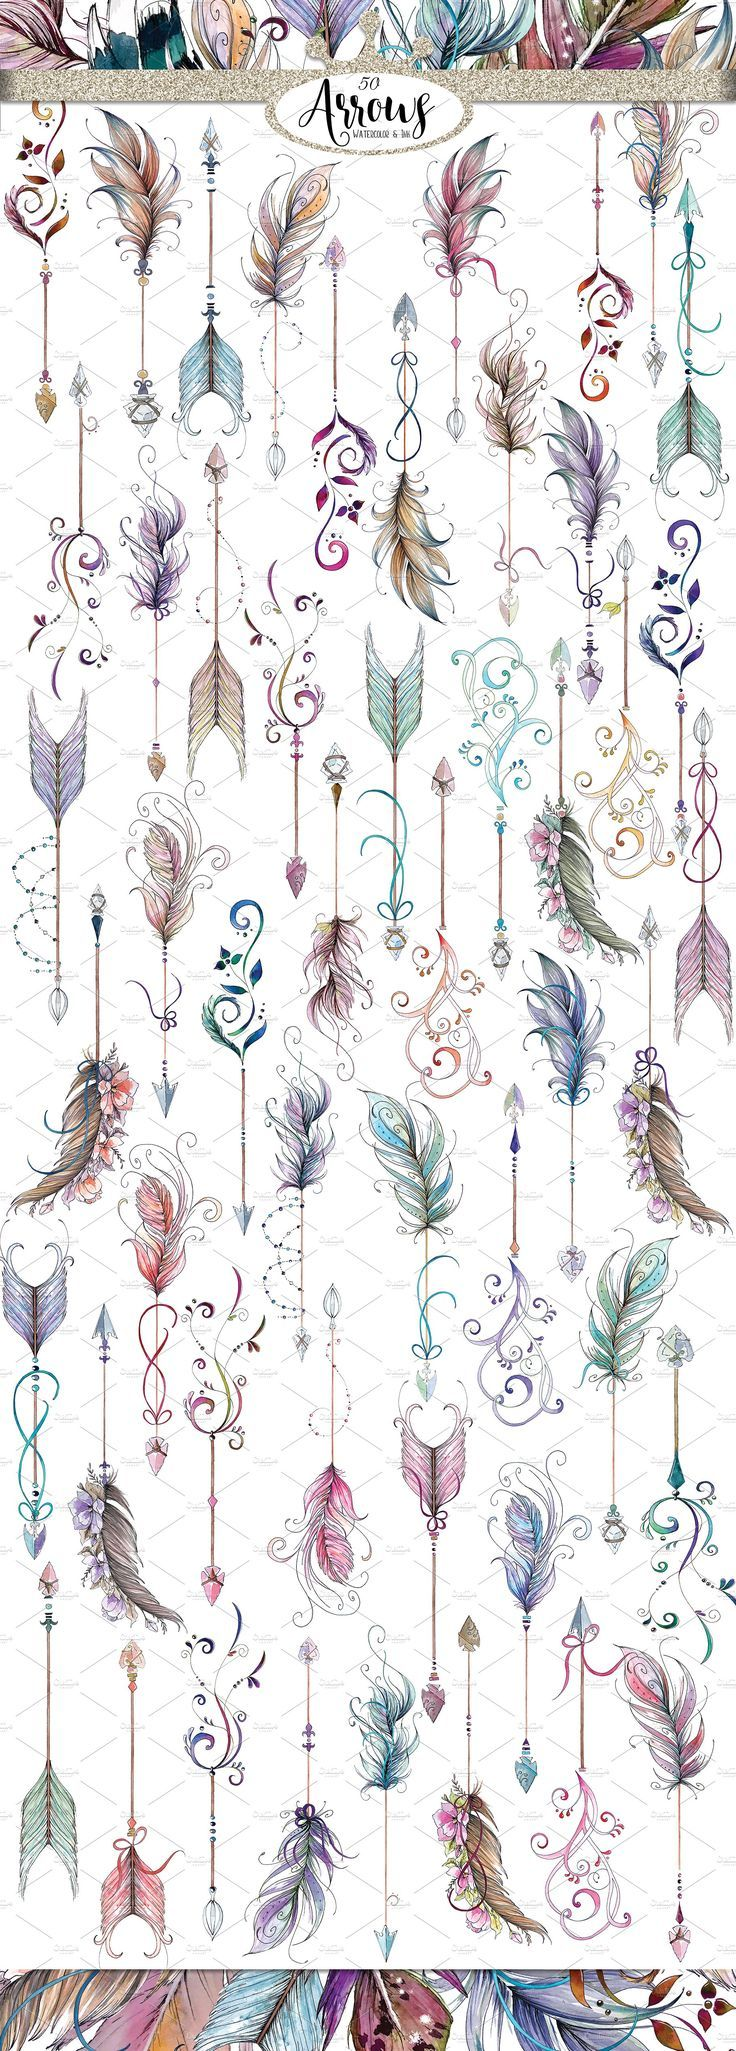 Watercolor & Ink Boho Arrows ClipArt by Empire 7 Creatives on @creativemarket #craftsaleitems